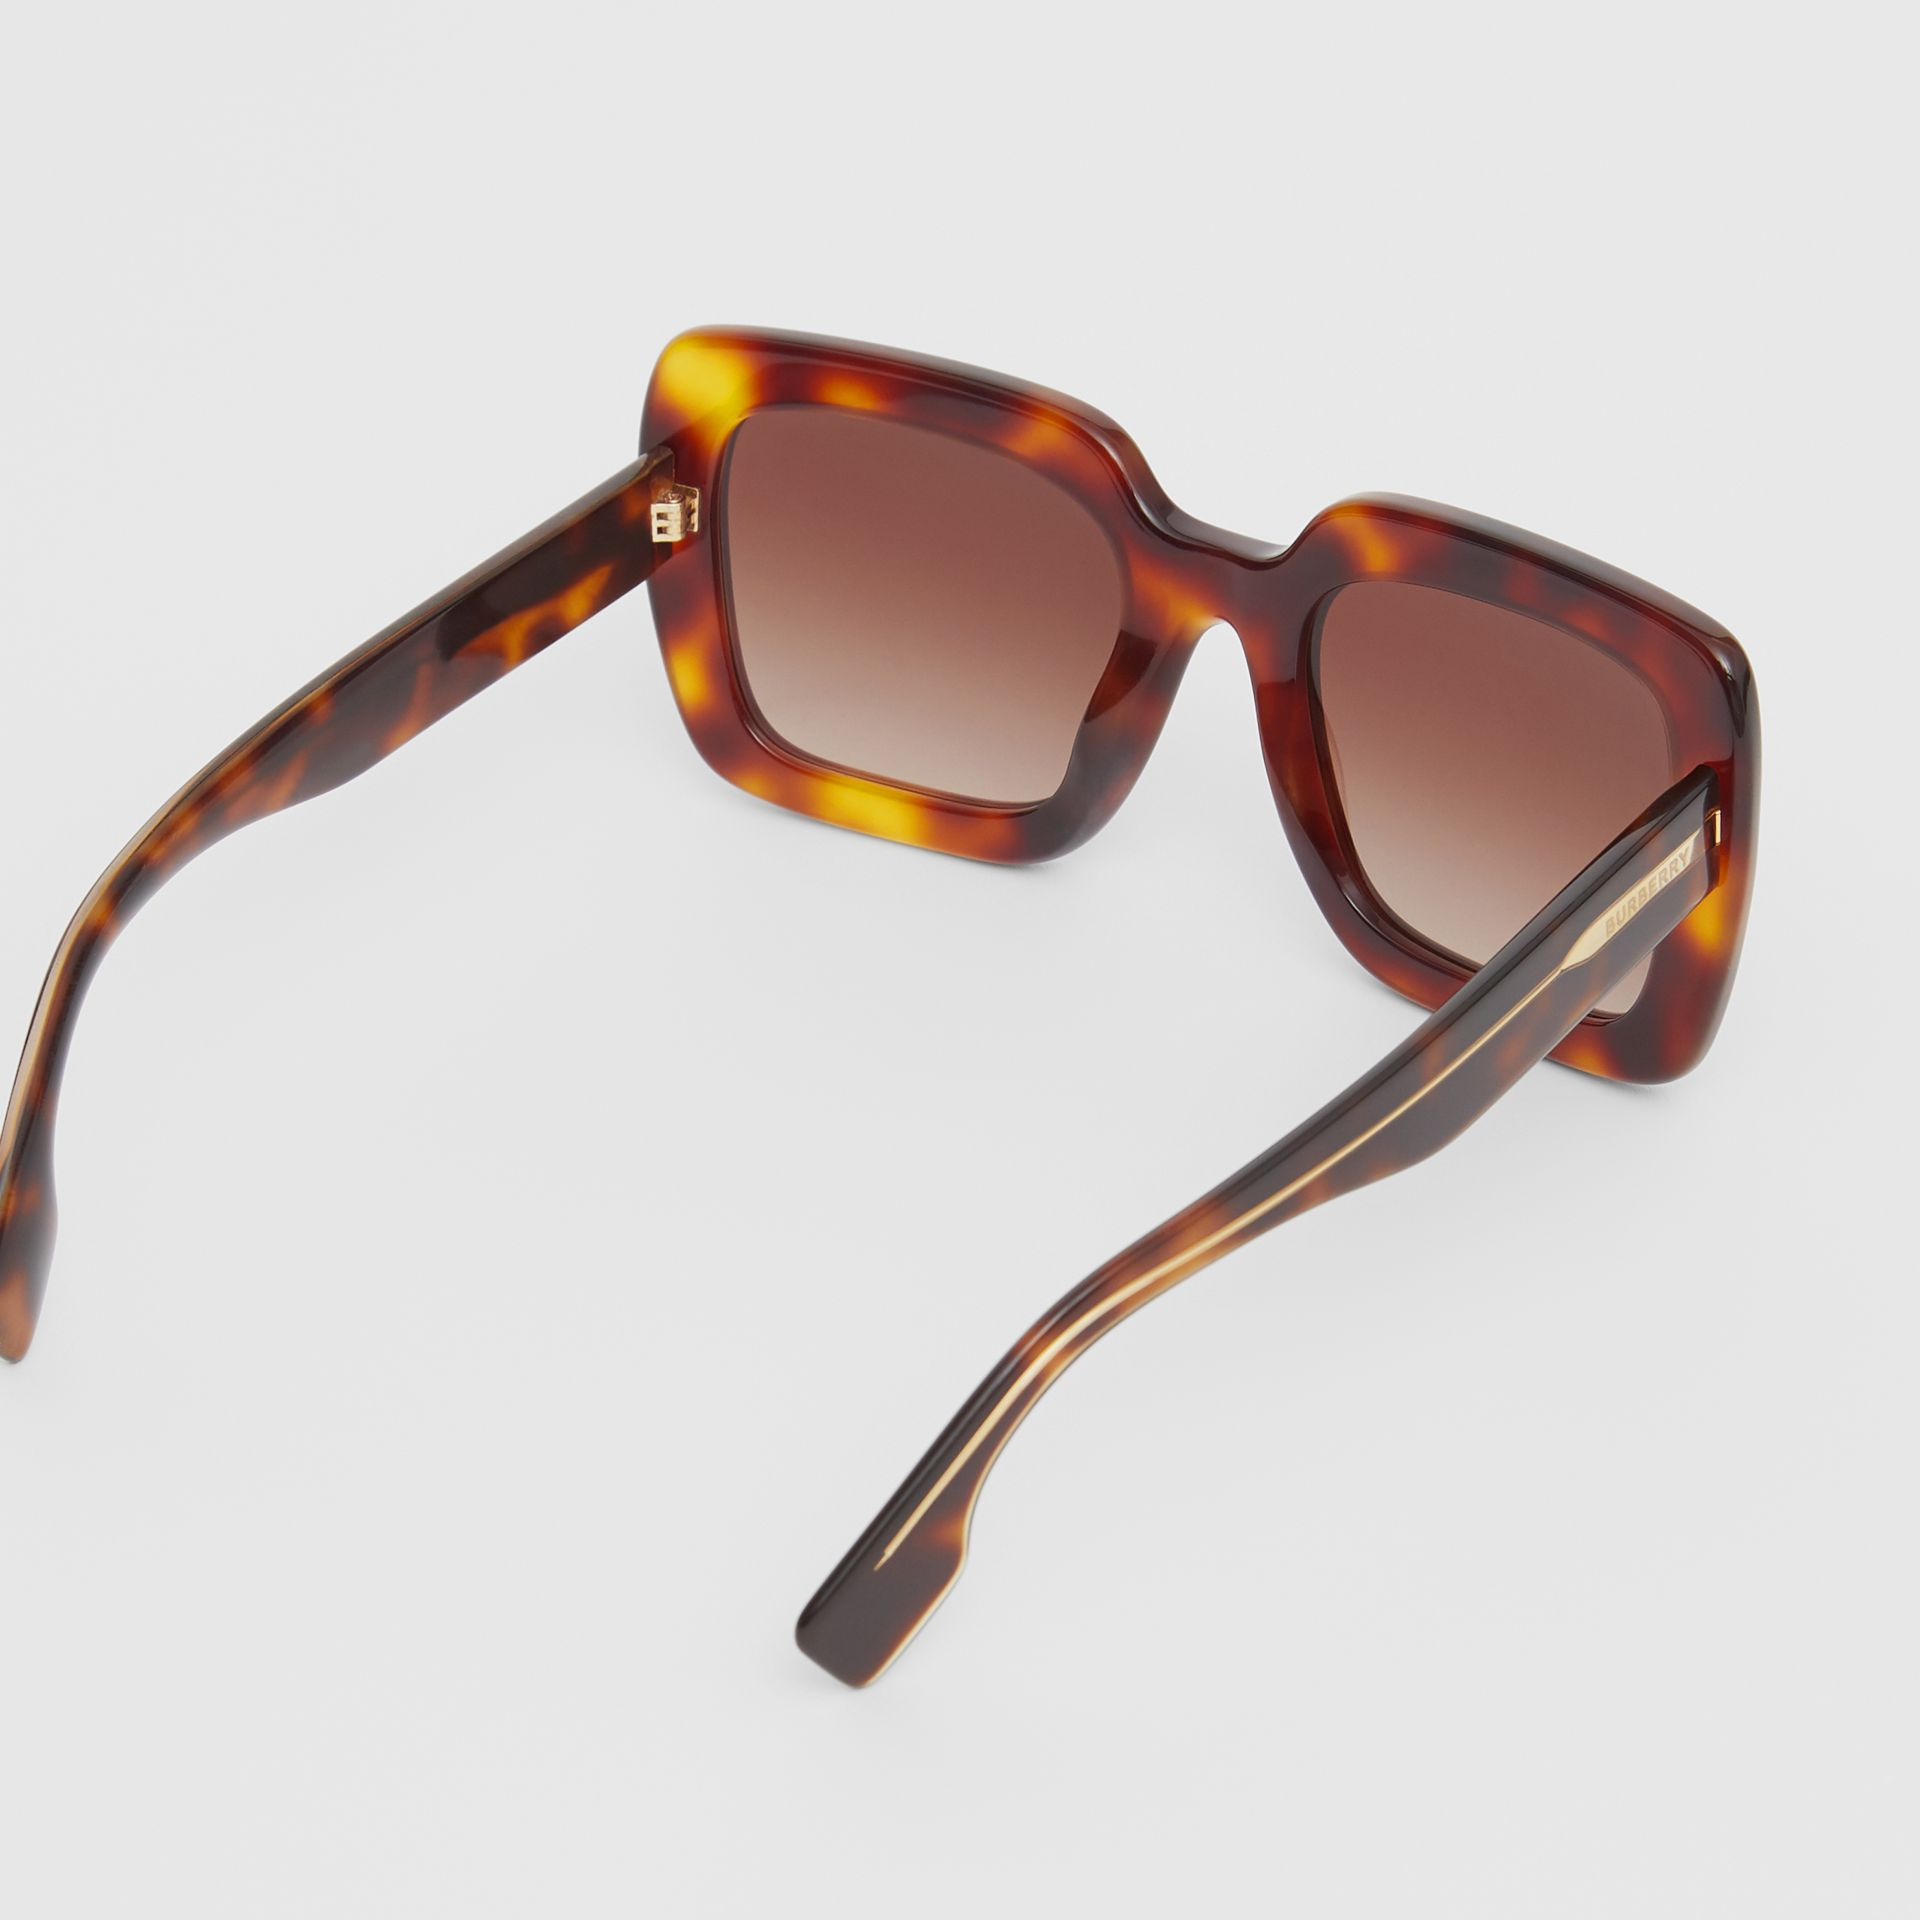 Oversized Square Frame Sunglasses in Tortoiseshell - Women | Burberry Singapore - gallery image 3